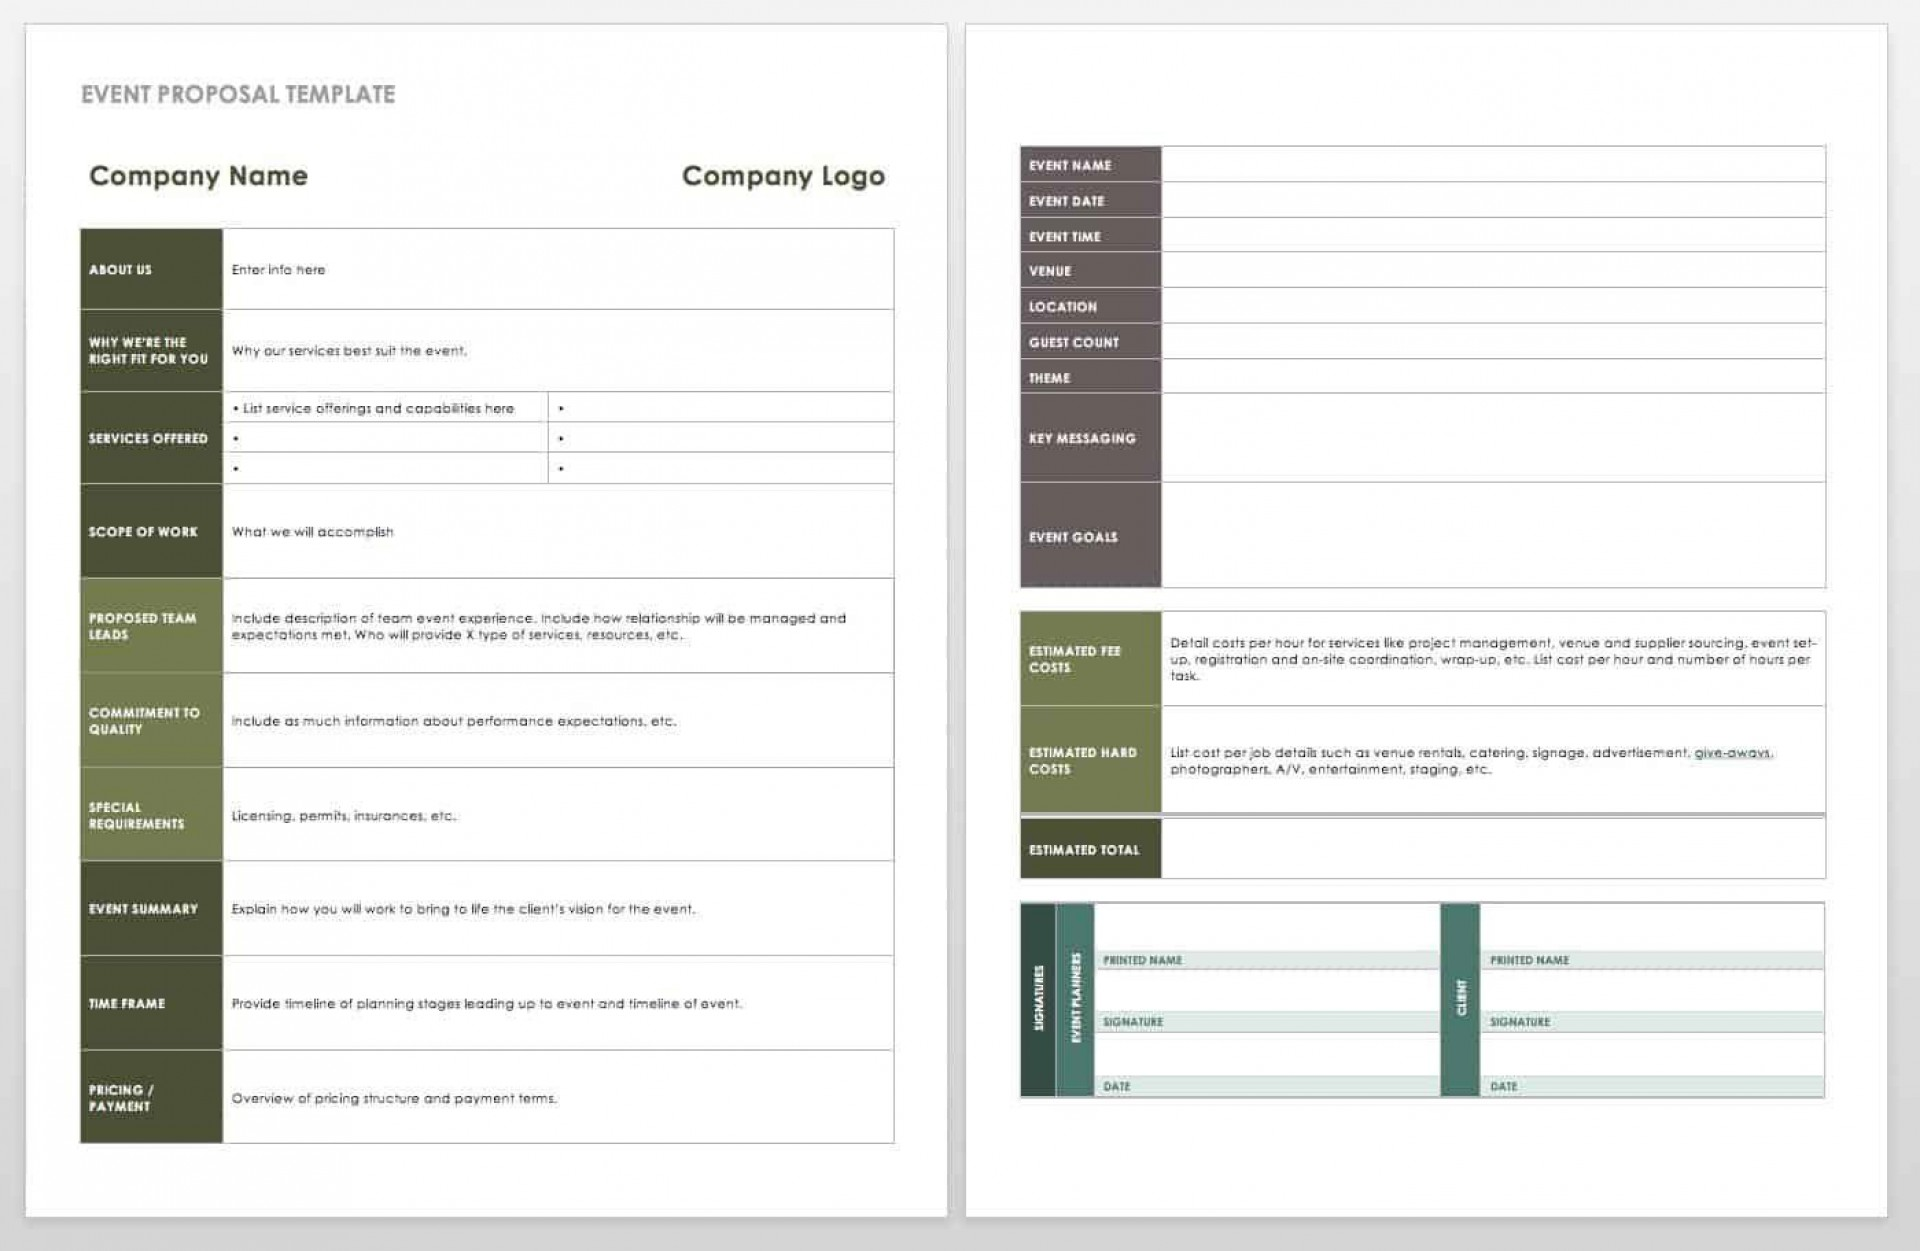 005 Impressive Free Event Planning Template For Corporate Excel Image 1920